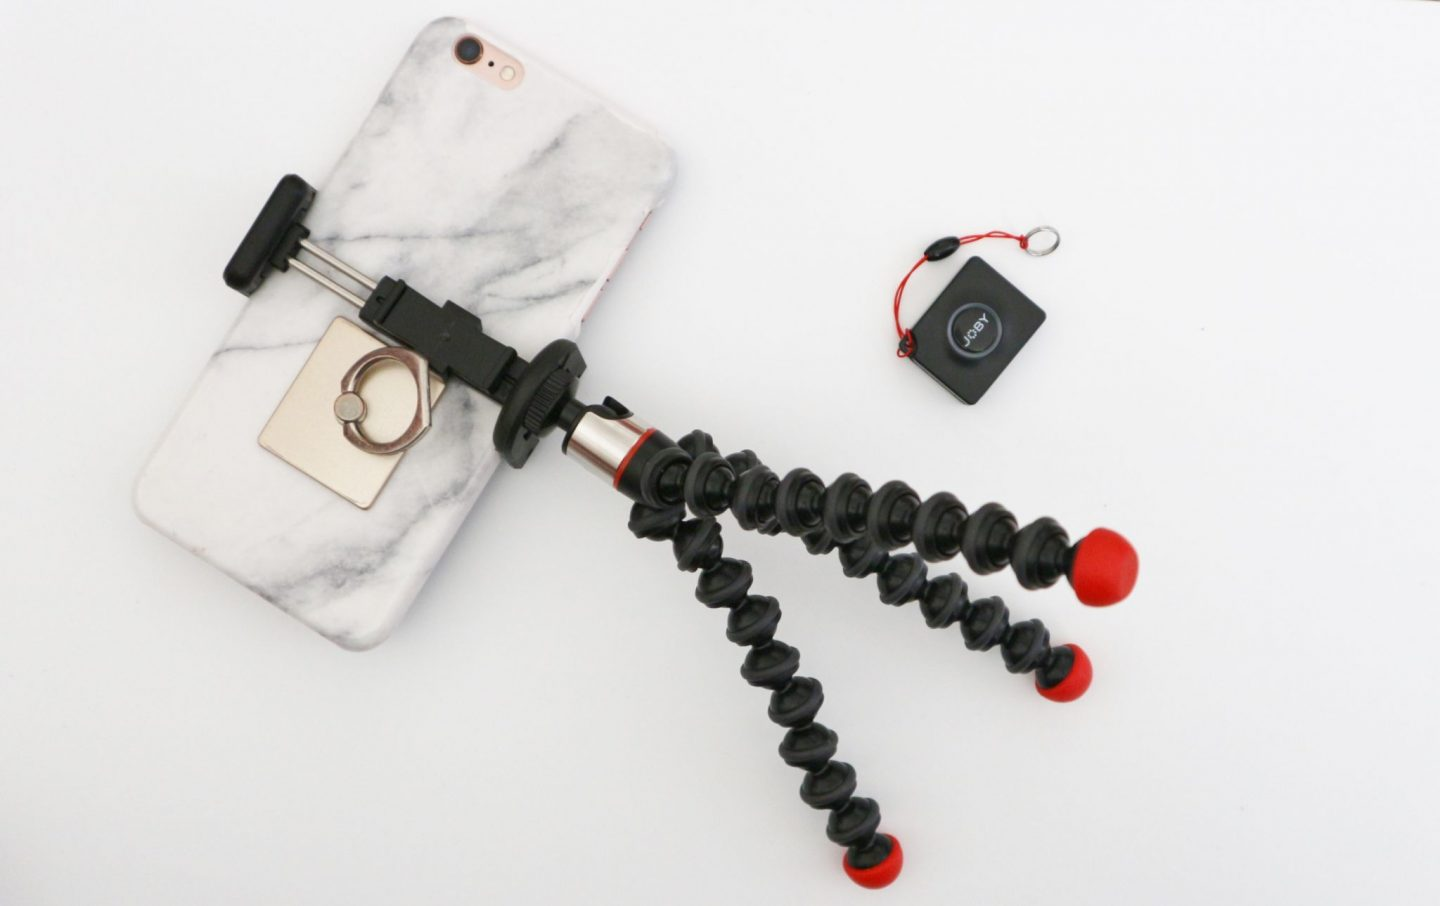 https://www.johnlewis.com/joby-magnetic-gorillapod-tripod-for-compact-cameras/p231874276